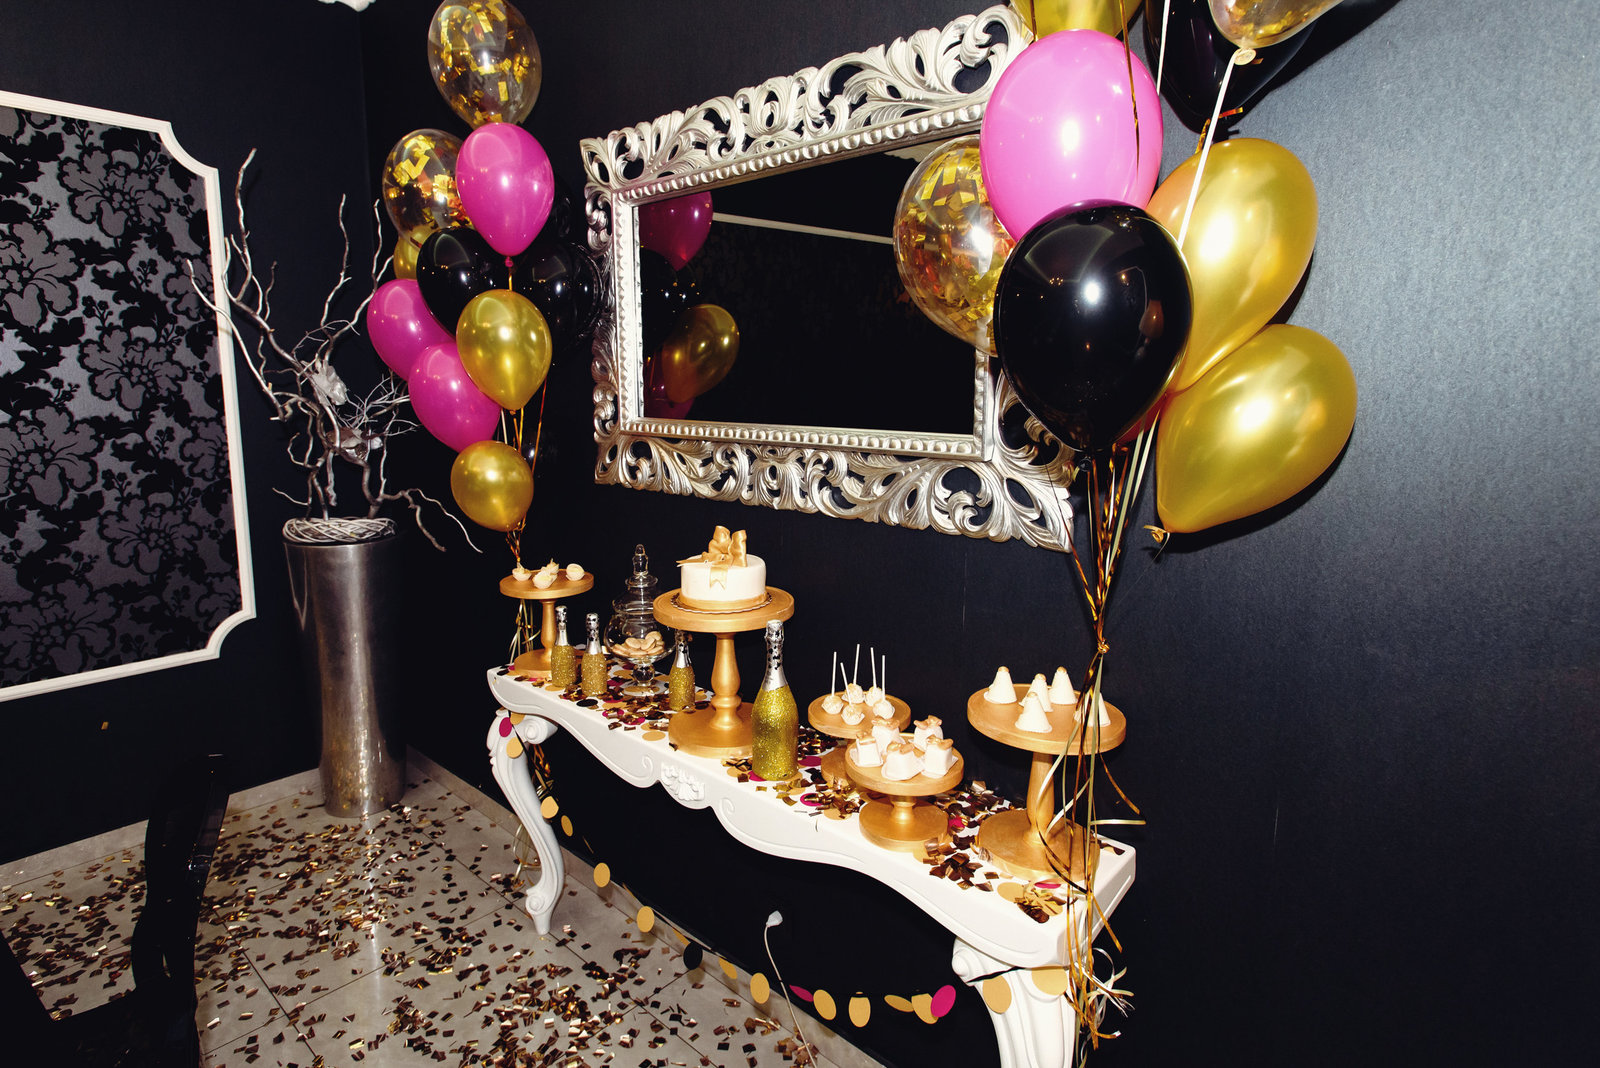 milestone bday celebration-private party